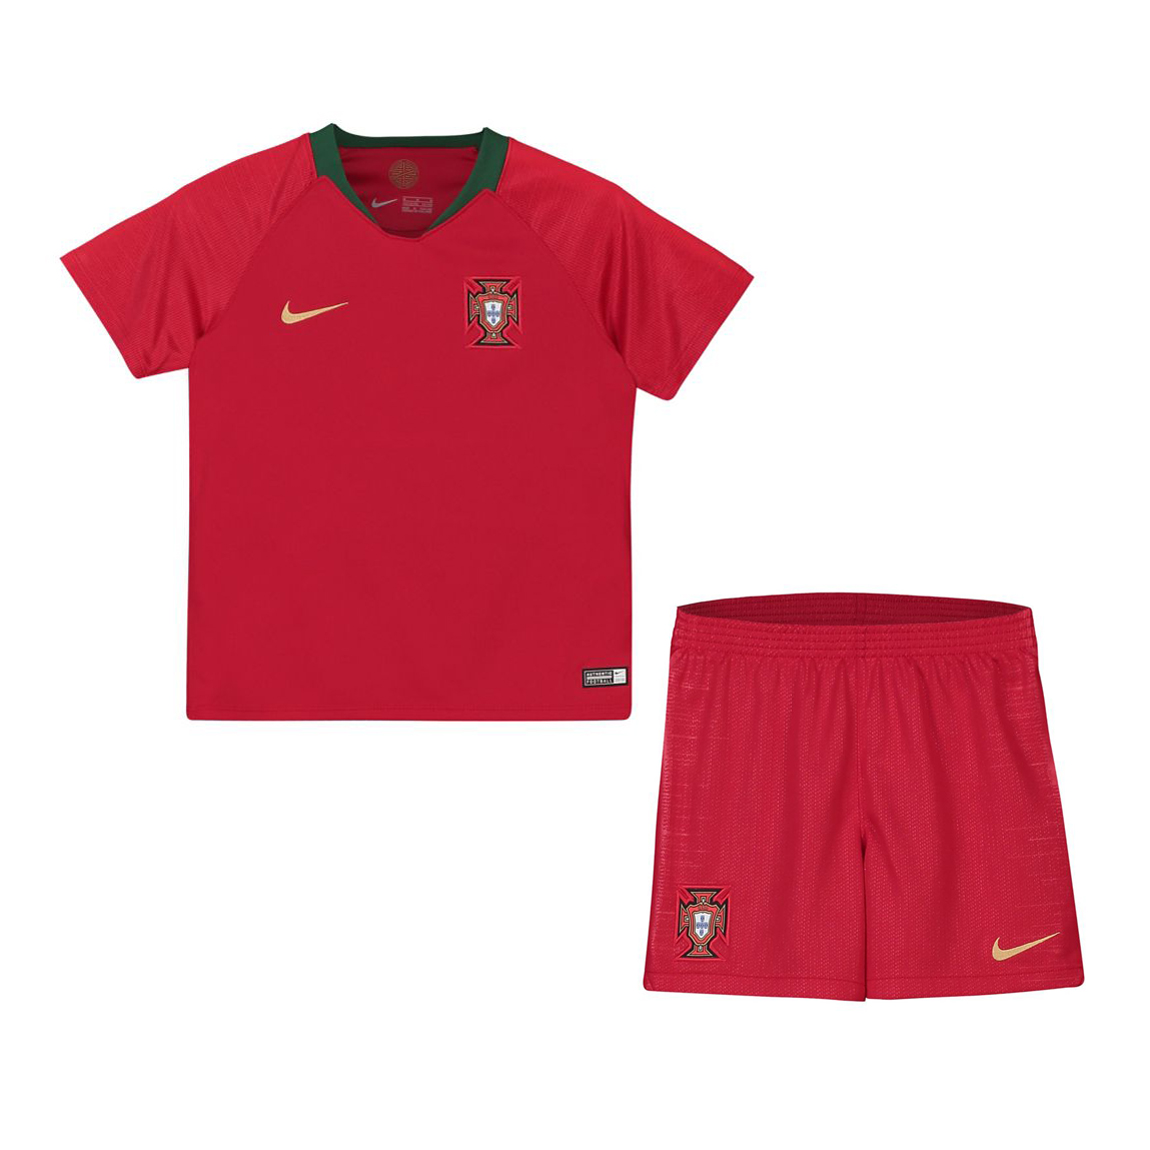 Portugal 2018 FIFA World Cup Home Kids Soccer Kit Children Shirt And Shorts